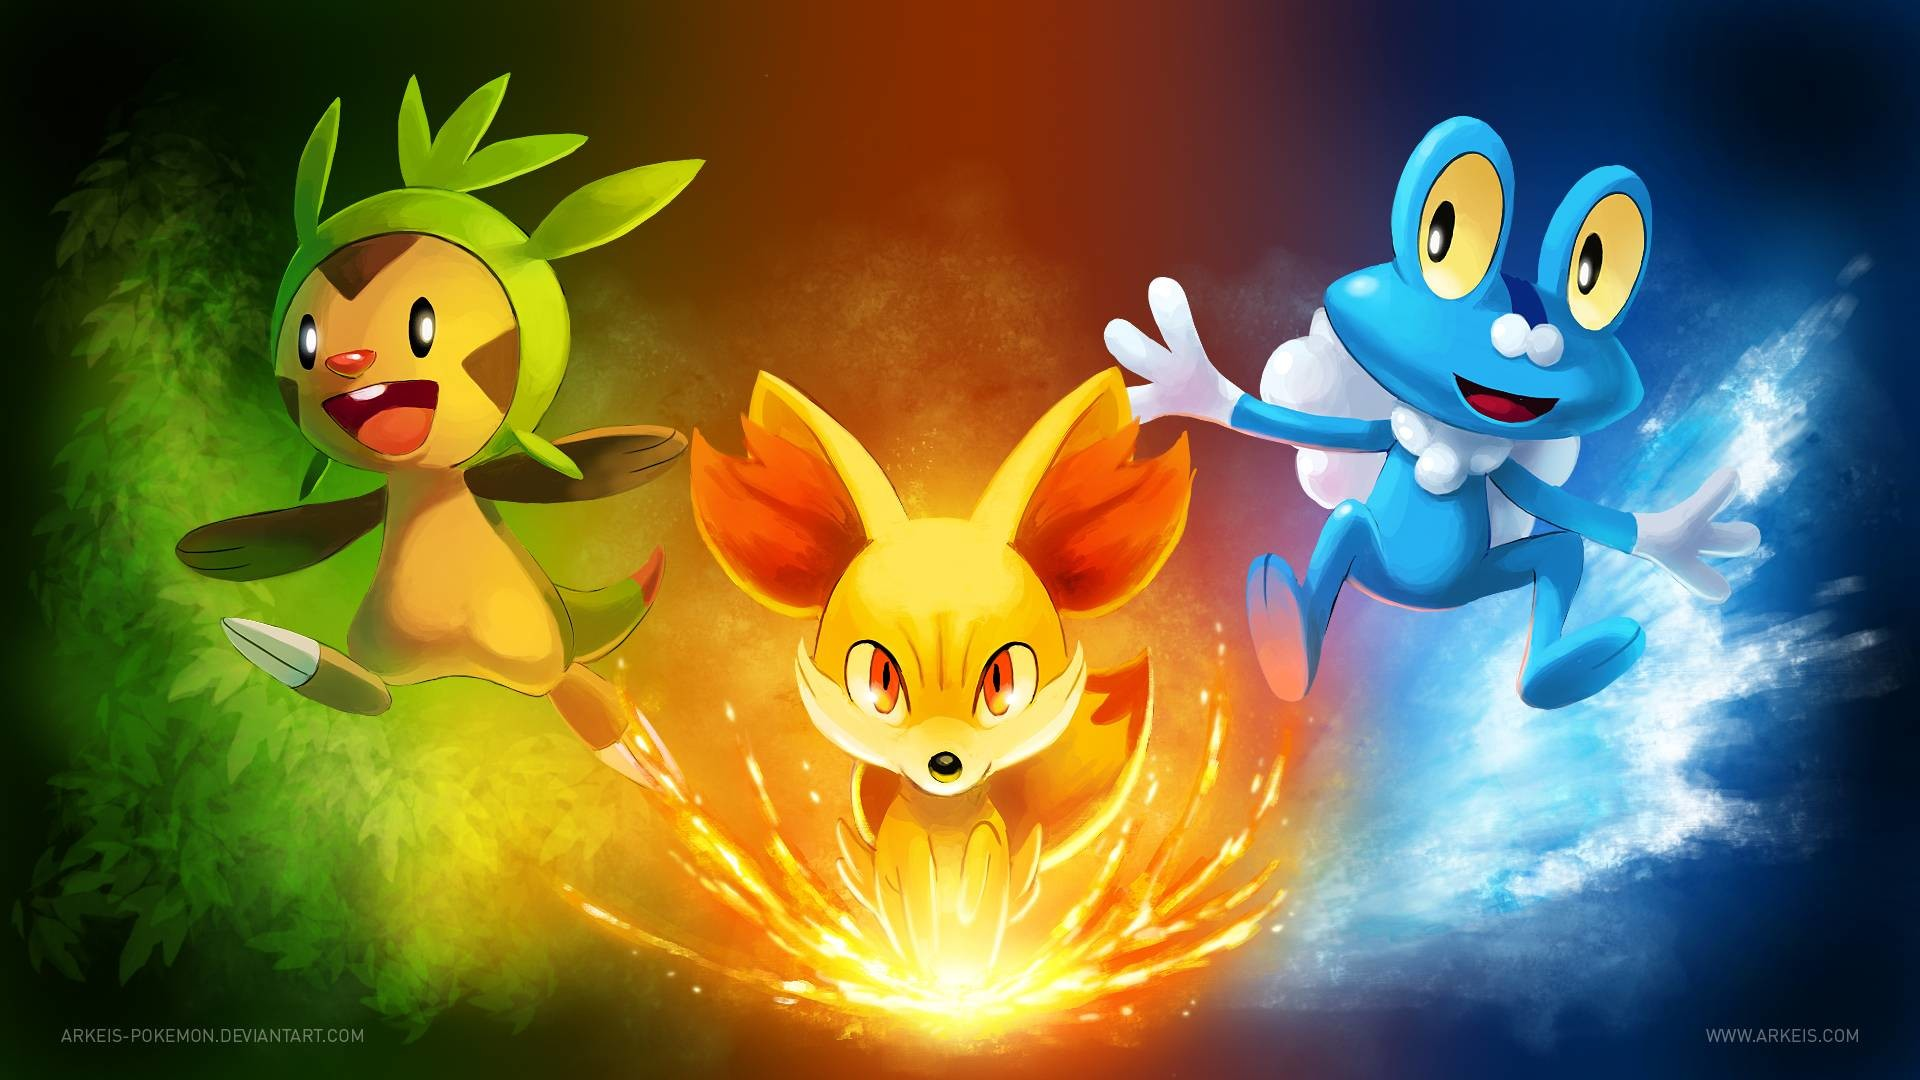 pokemon xy download for android